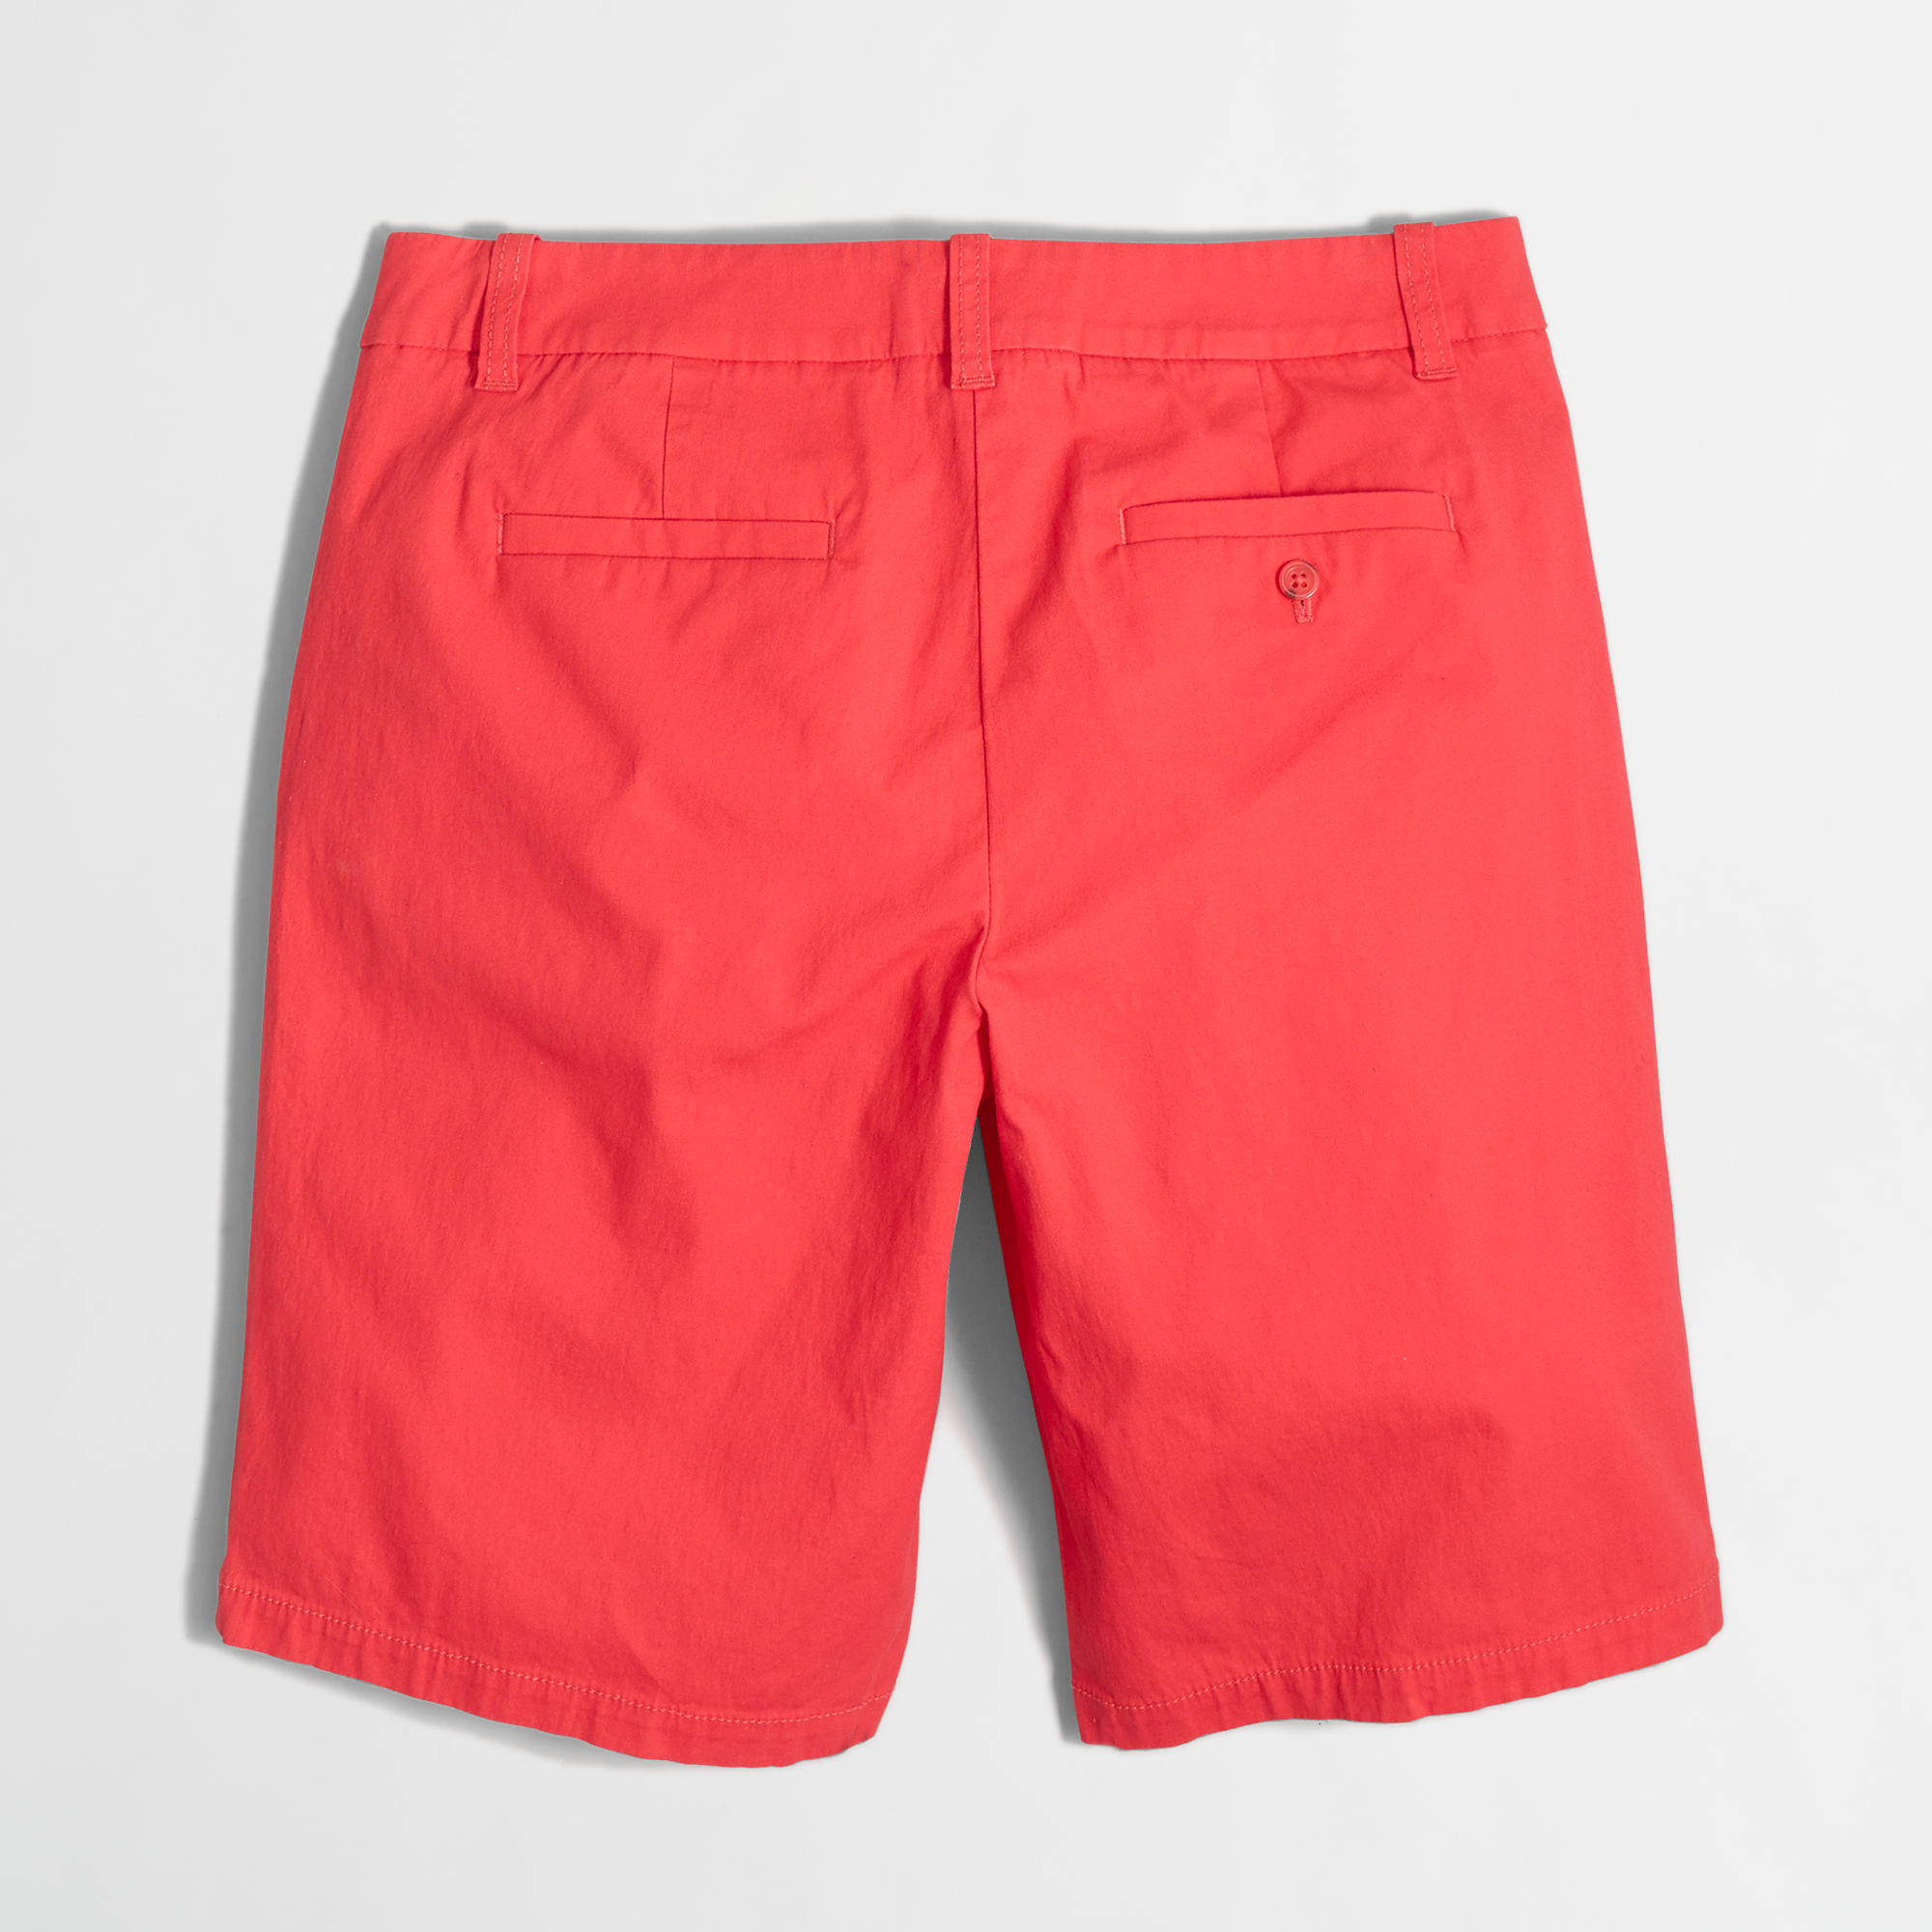 Bermuda shorts, also known as walk shorts or dress shorts, are a particular type of short trousers, worn as semi-casual attire by both men and women. The hem, which can be cuffed or un-cuffed, is around 1 inch above the knee.